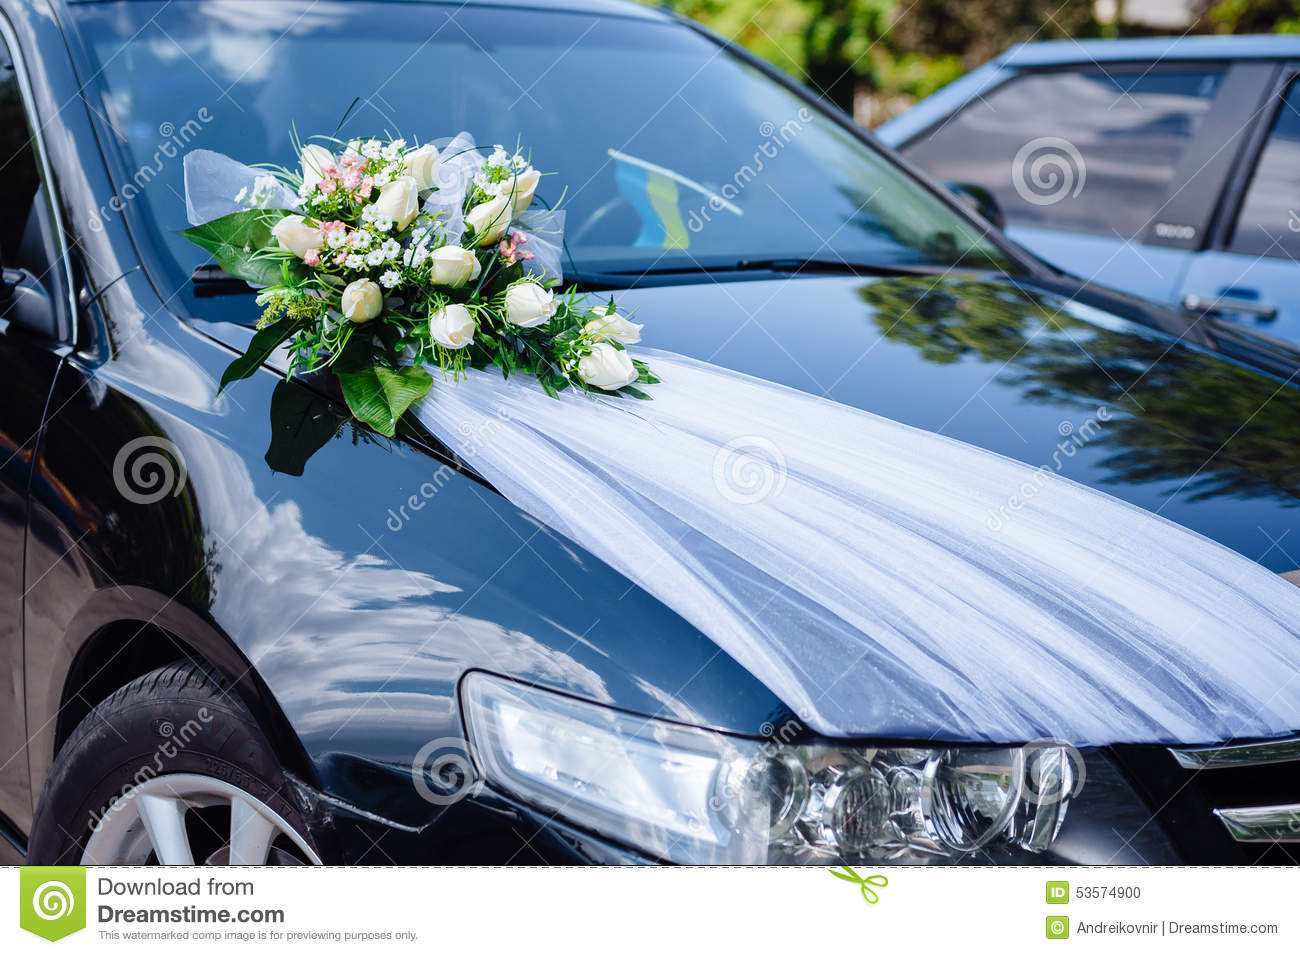 Car Decoration Weding Wedding Car Decor Flowers Bouquet Car Decoration Stock Photo